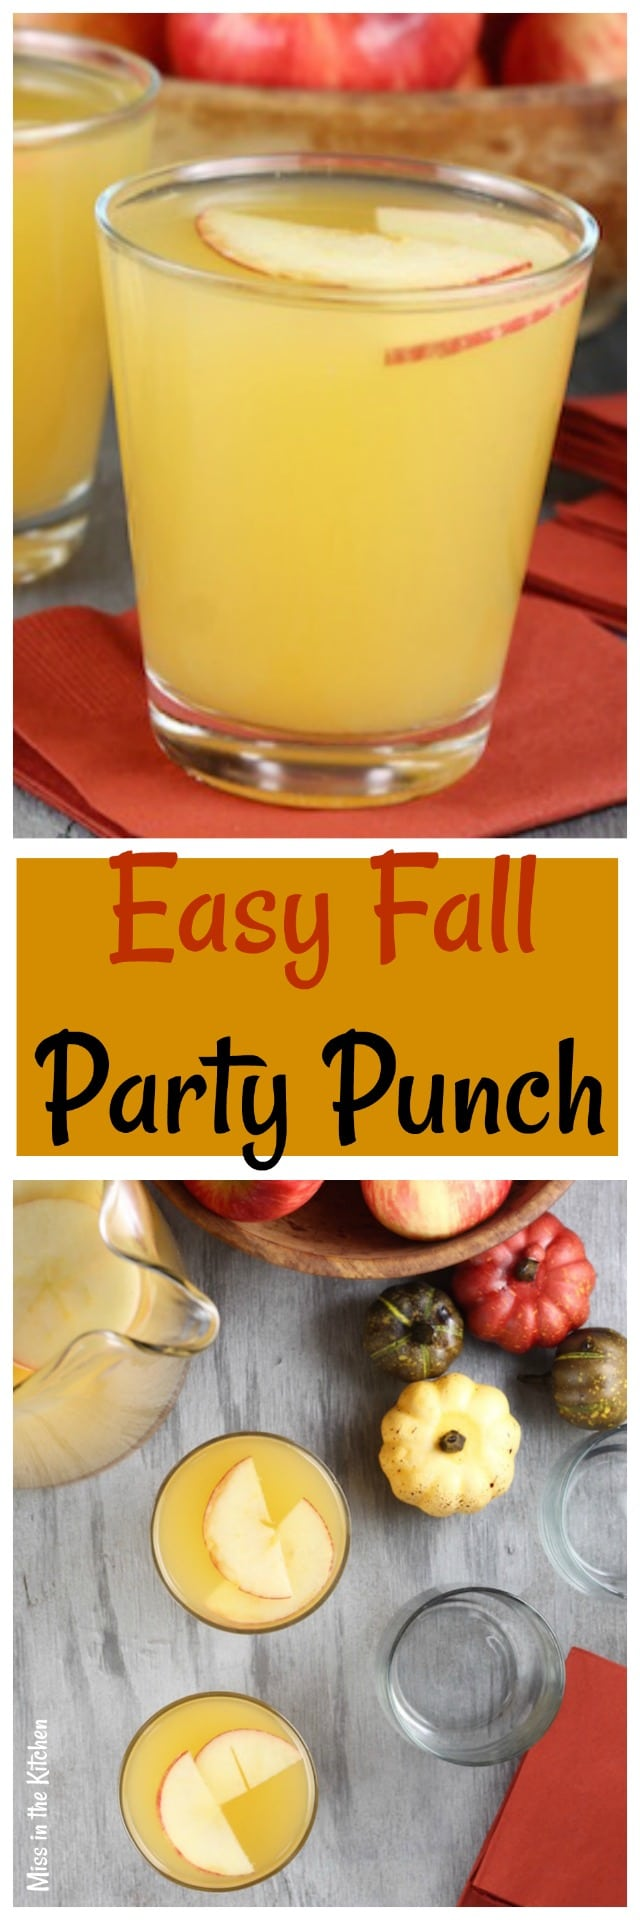 Easy Fall Party Punch Recipe perfect for any fall tailgating party or Thanksgiving! From MissintheKitchen.com